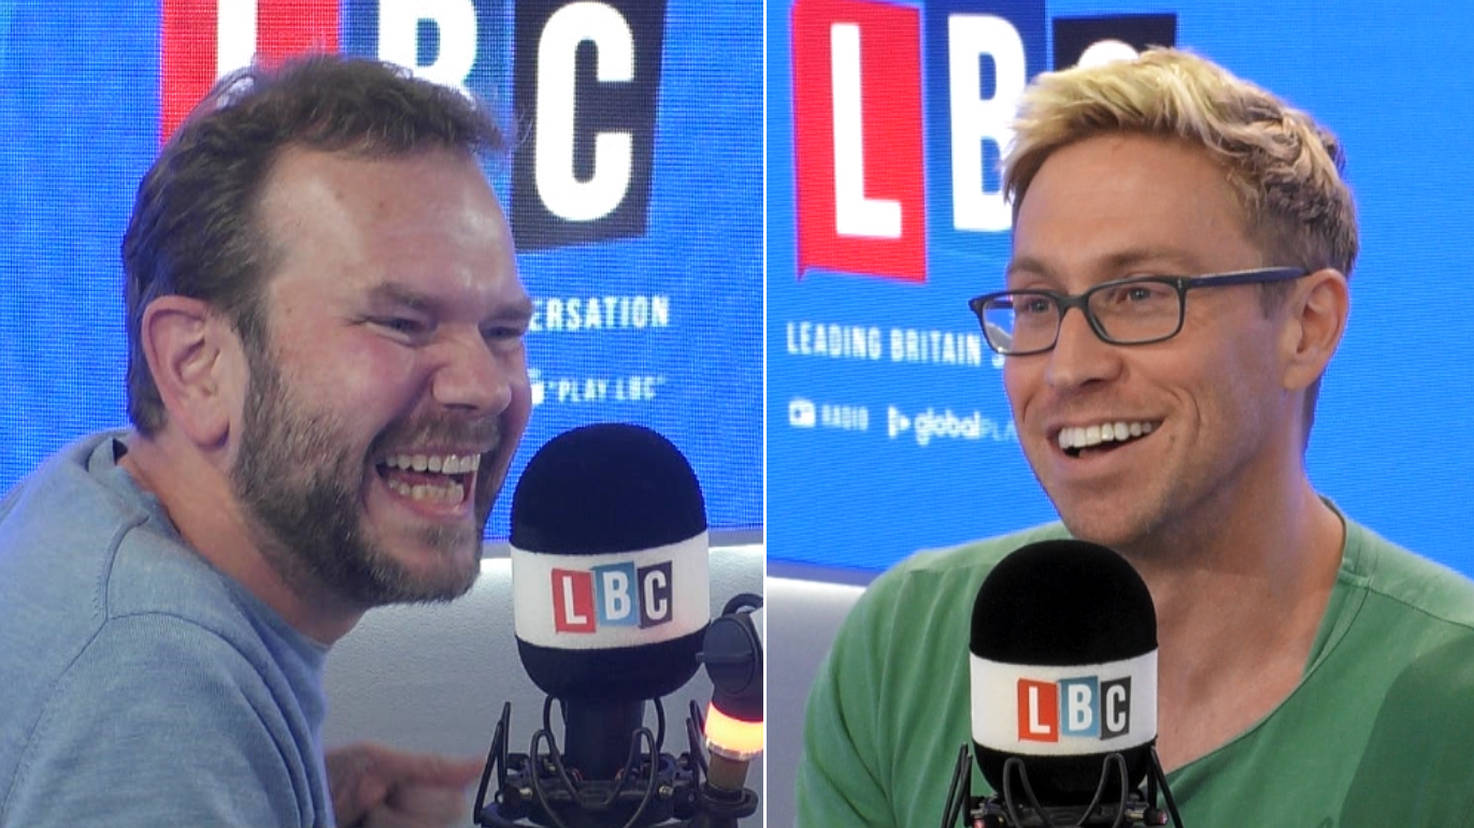 Full Disclosure With James O'Brien: Special Guest Russell Howard